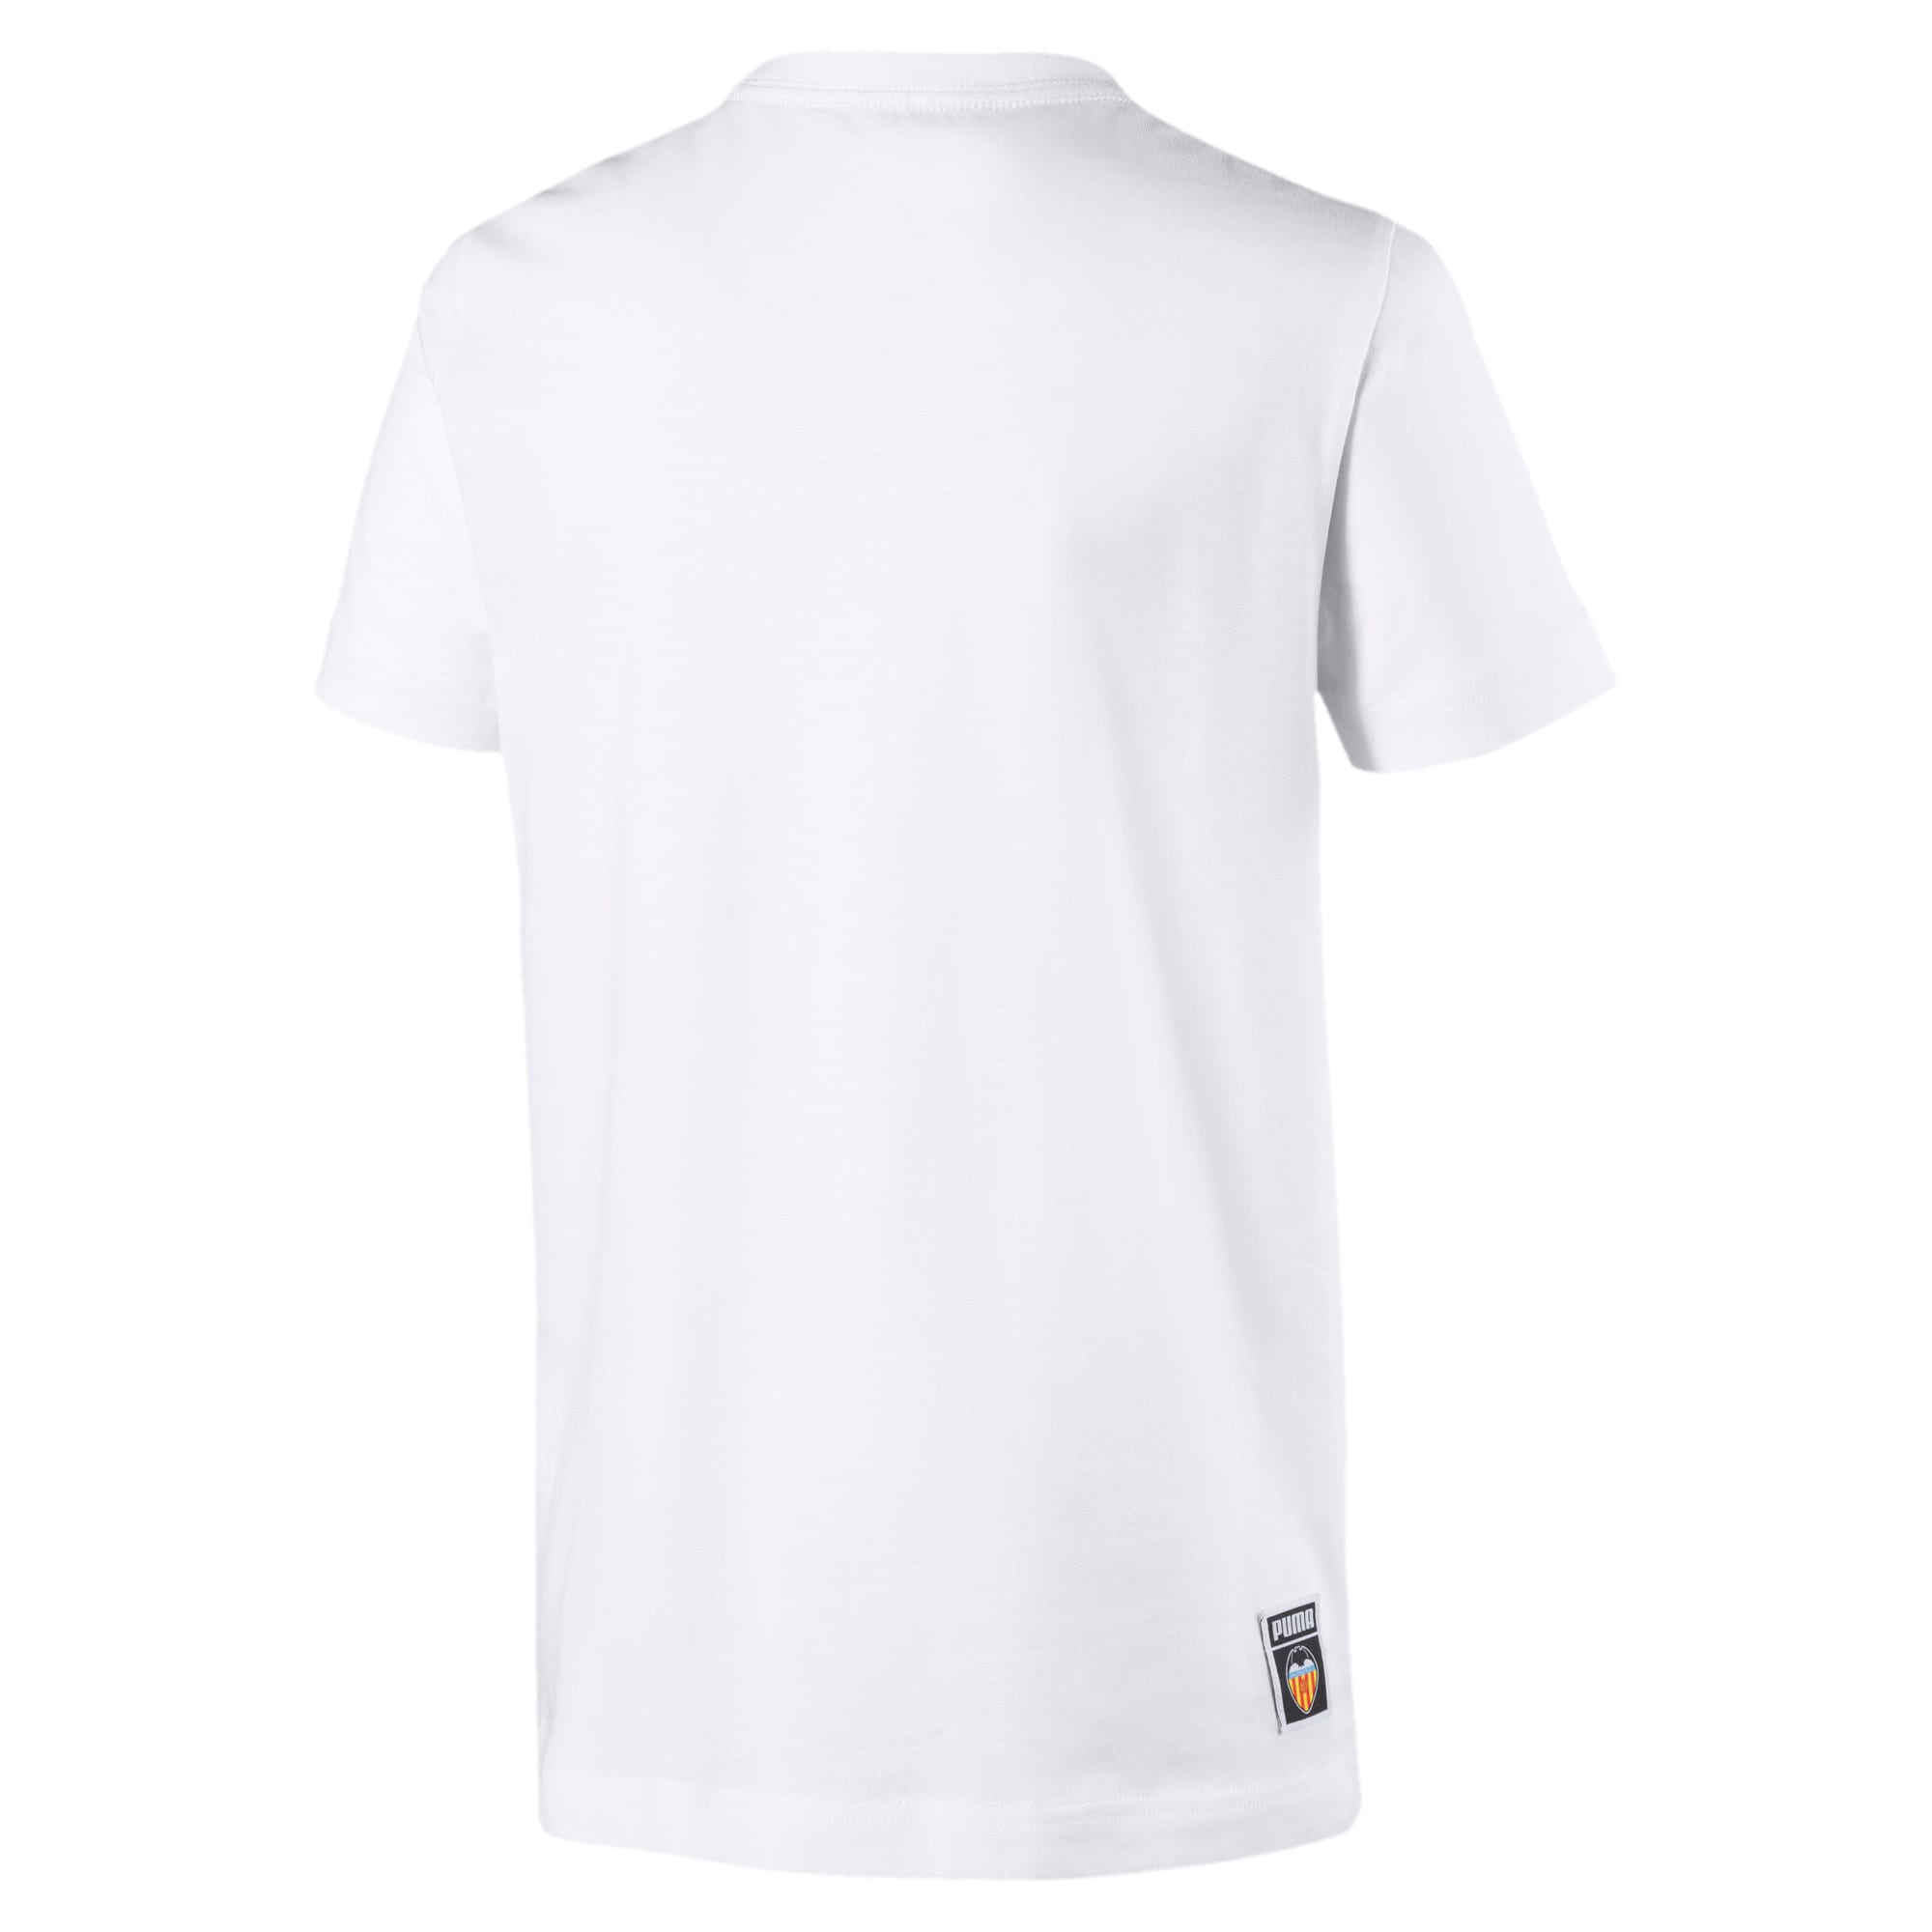 Thumbnail 2 of Valencia CF Shoe Tag Kinder T-Shirt, Puma White, medium